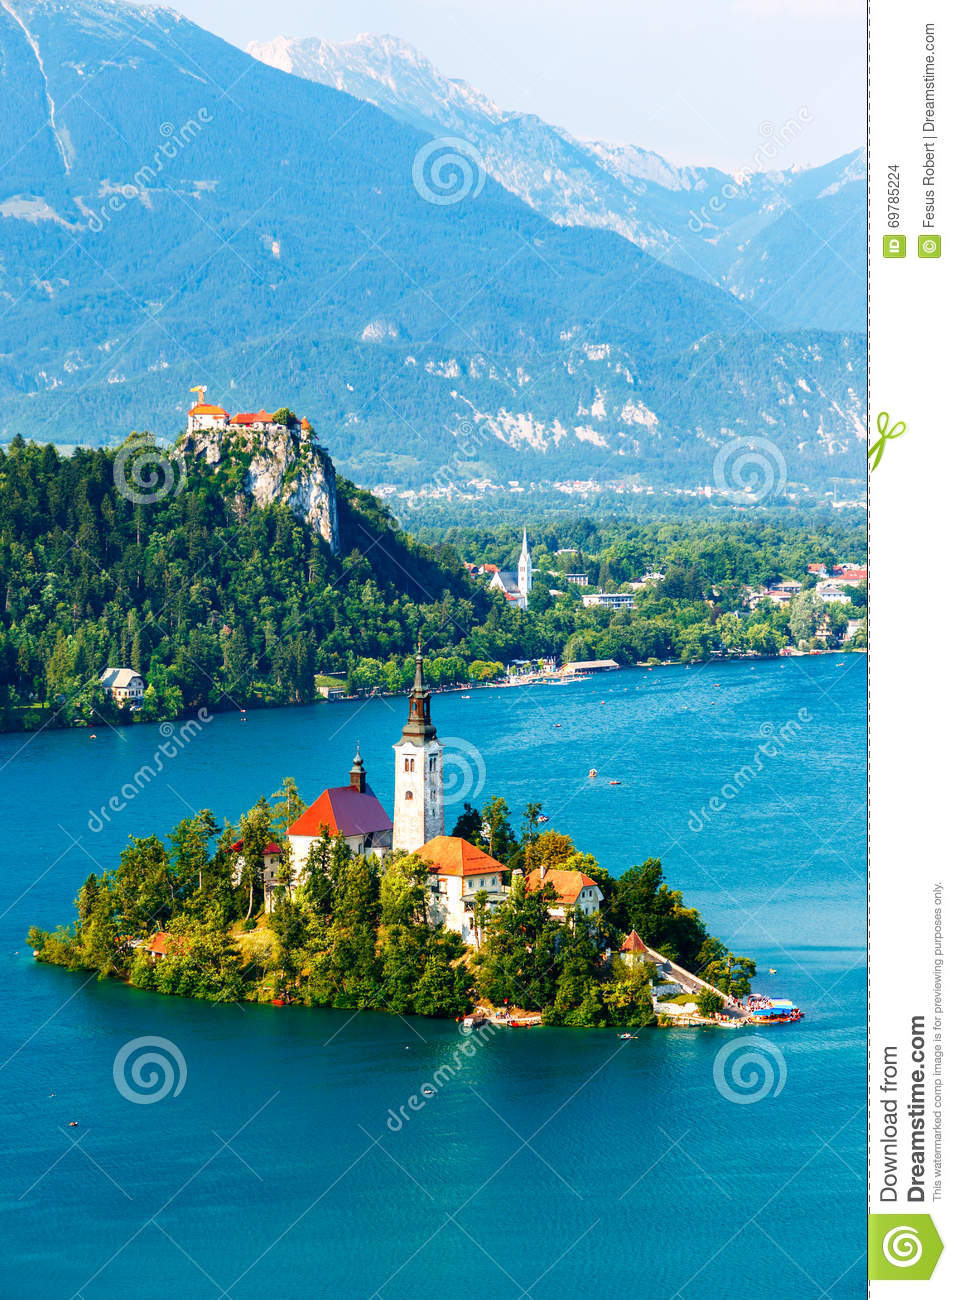 Bled with lake in summer, Slovenia